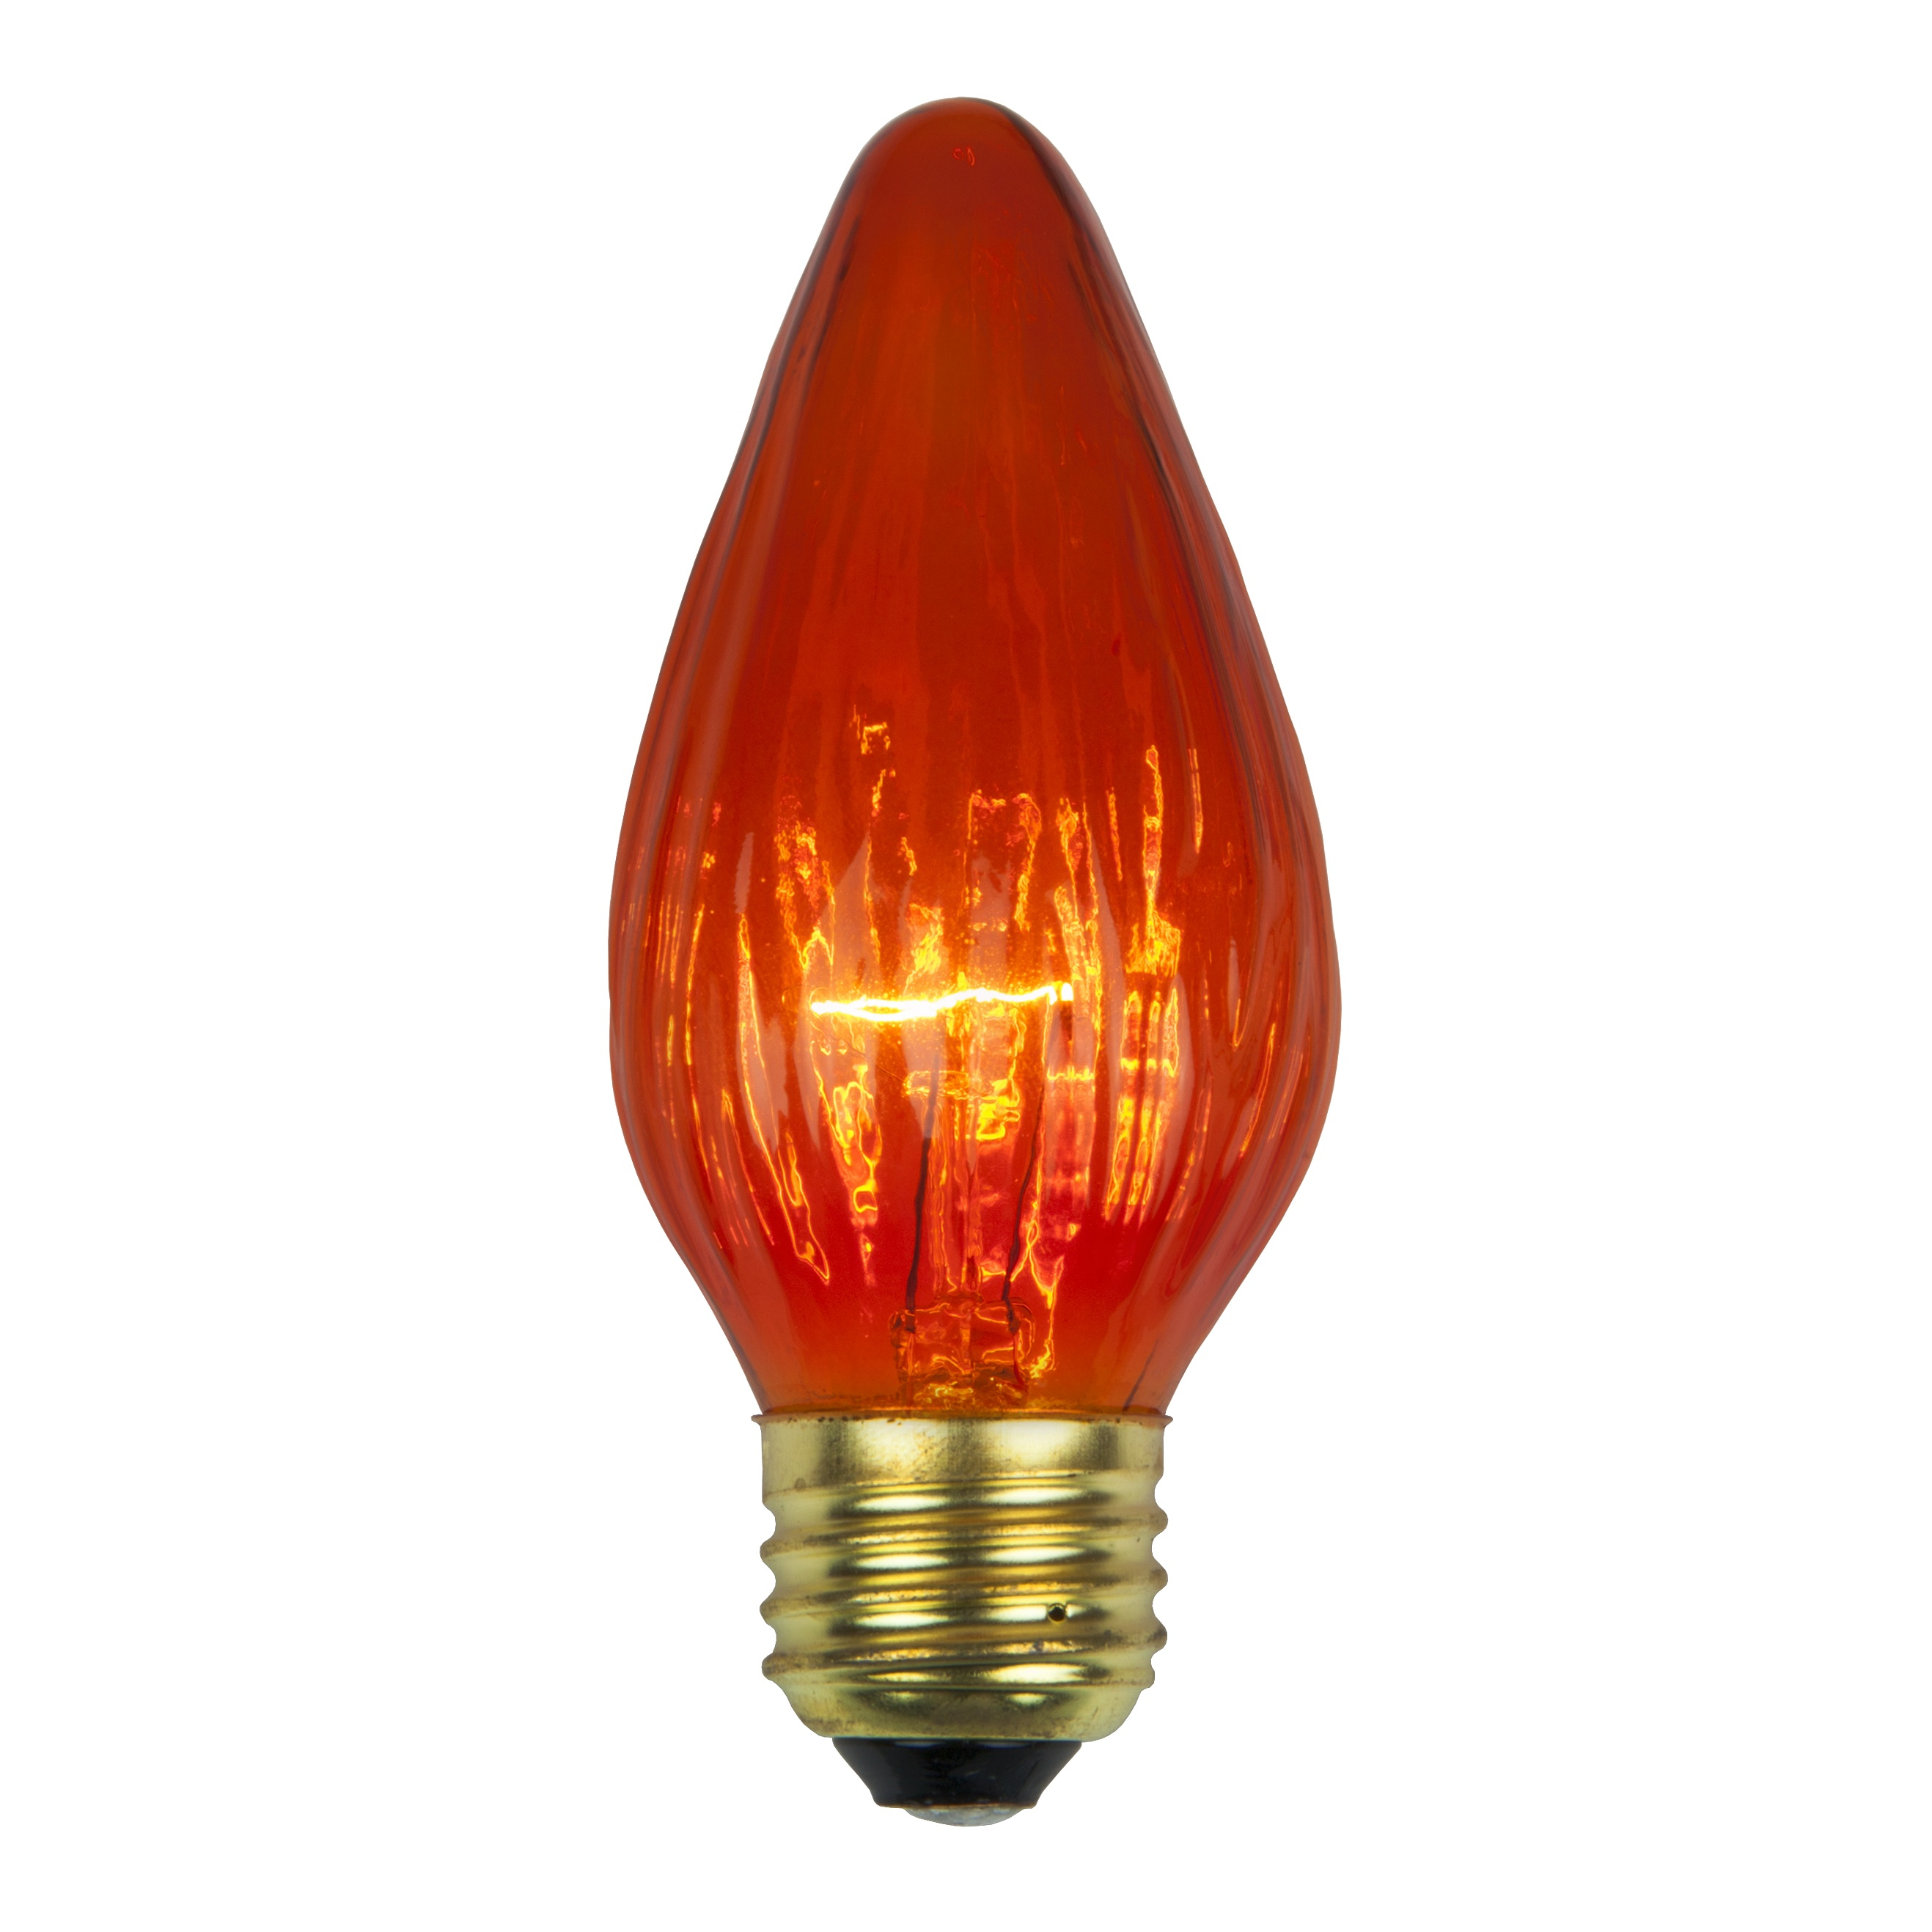 F15 Amber Flame Replacement Bulb E26 Nickel Base